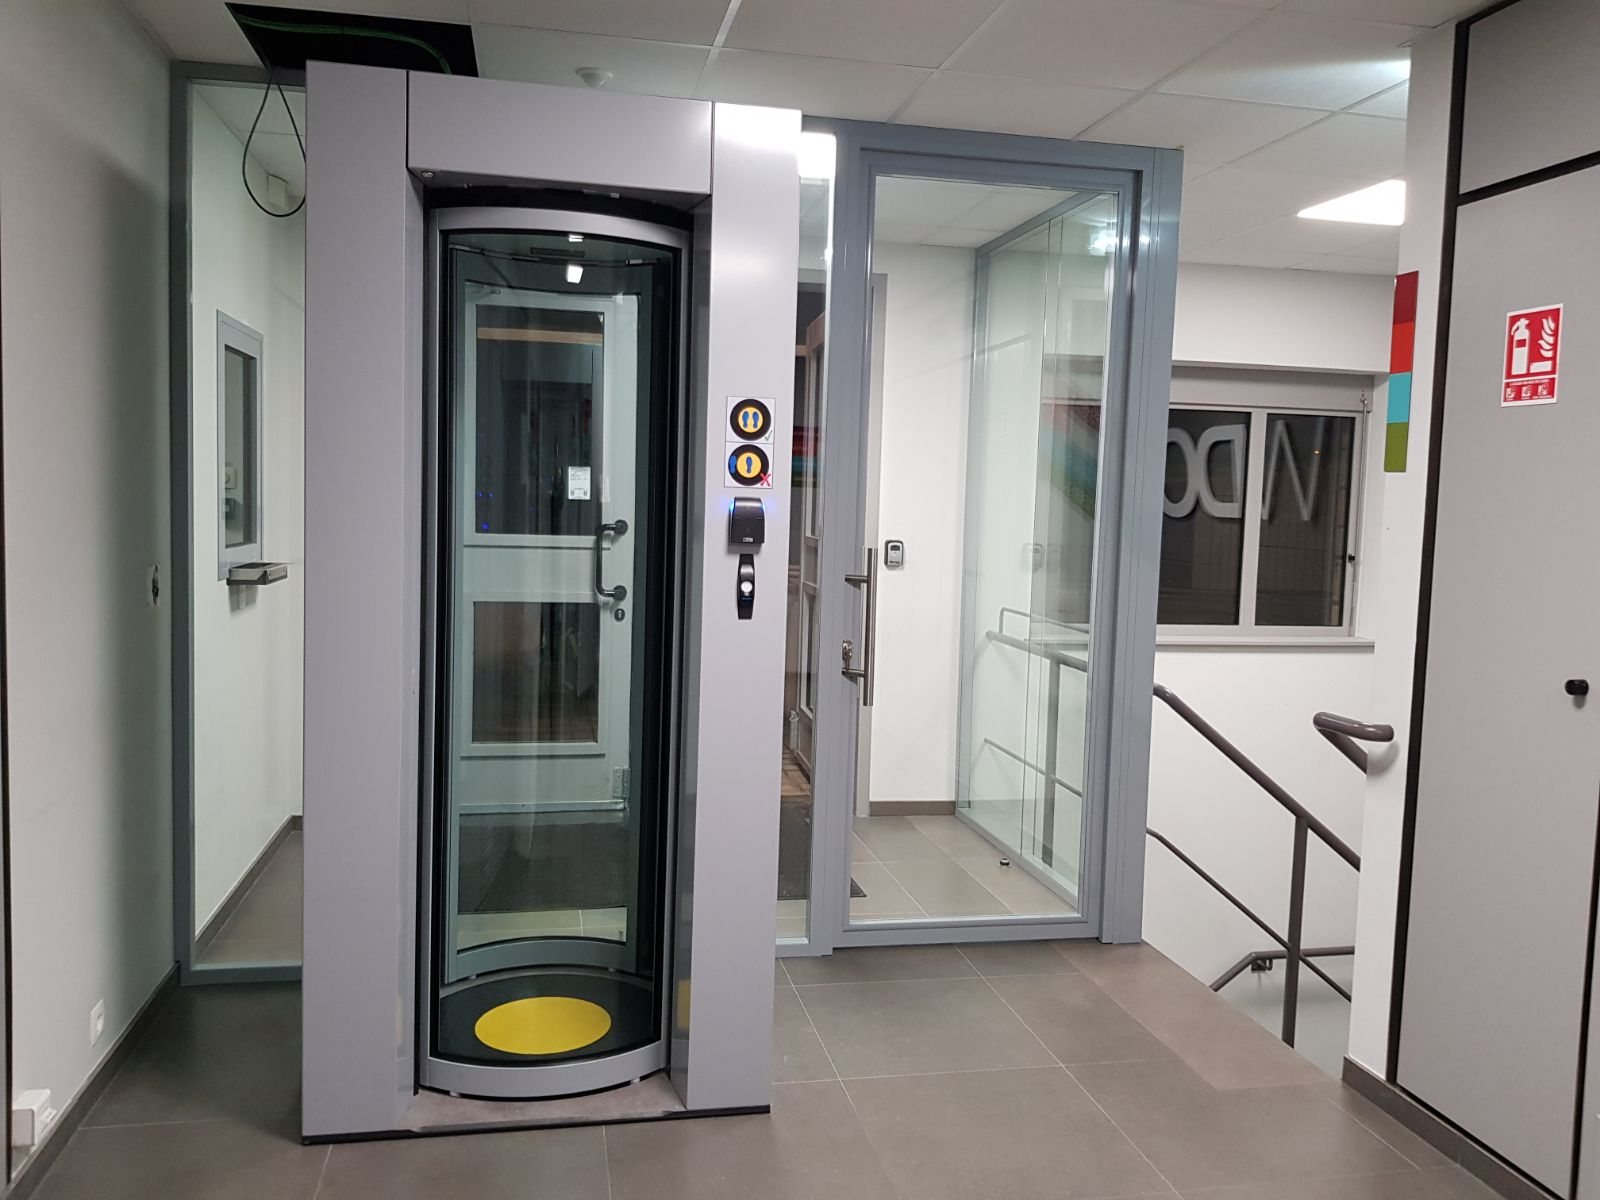 Rotating security sas between heavy laminated glass